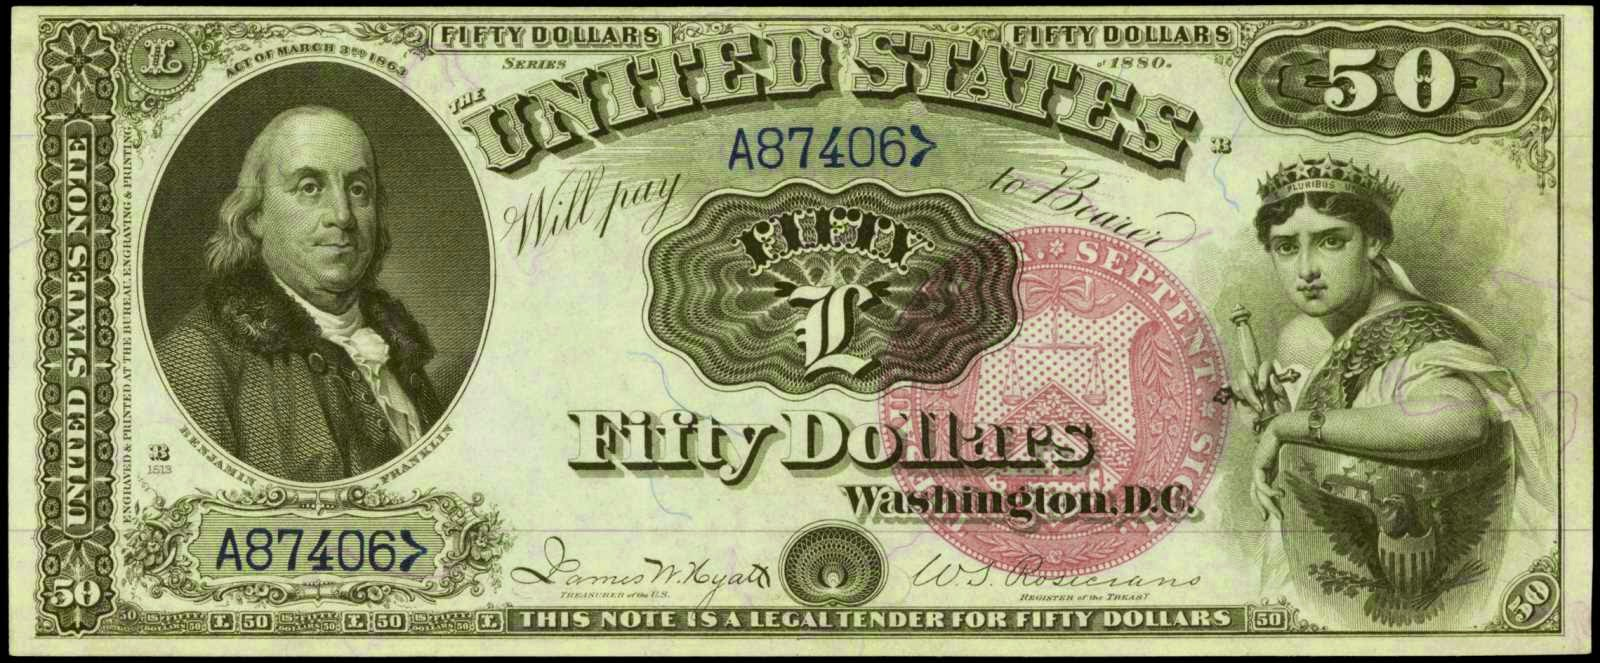 United States Notes 50 Dollar Legal Tender Note 1880, Benjamin Franklin